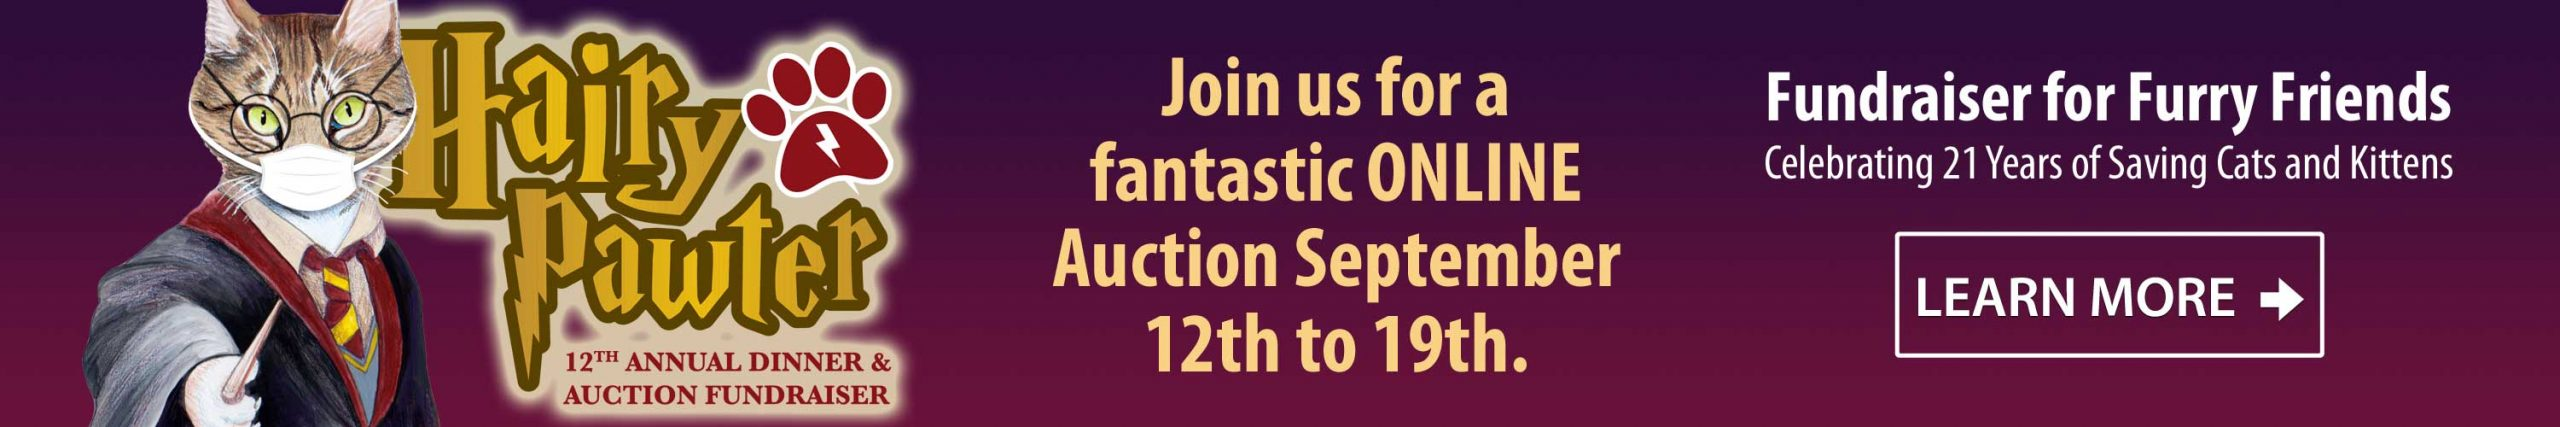 2020 Hairy Pawter Auction Banner